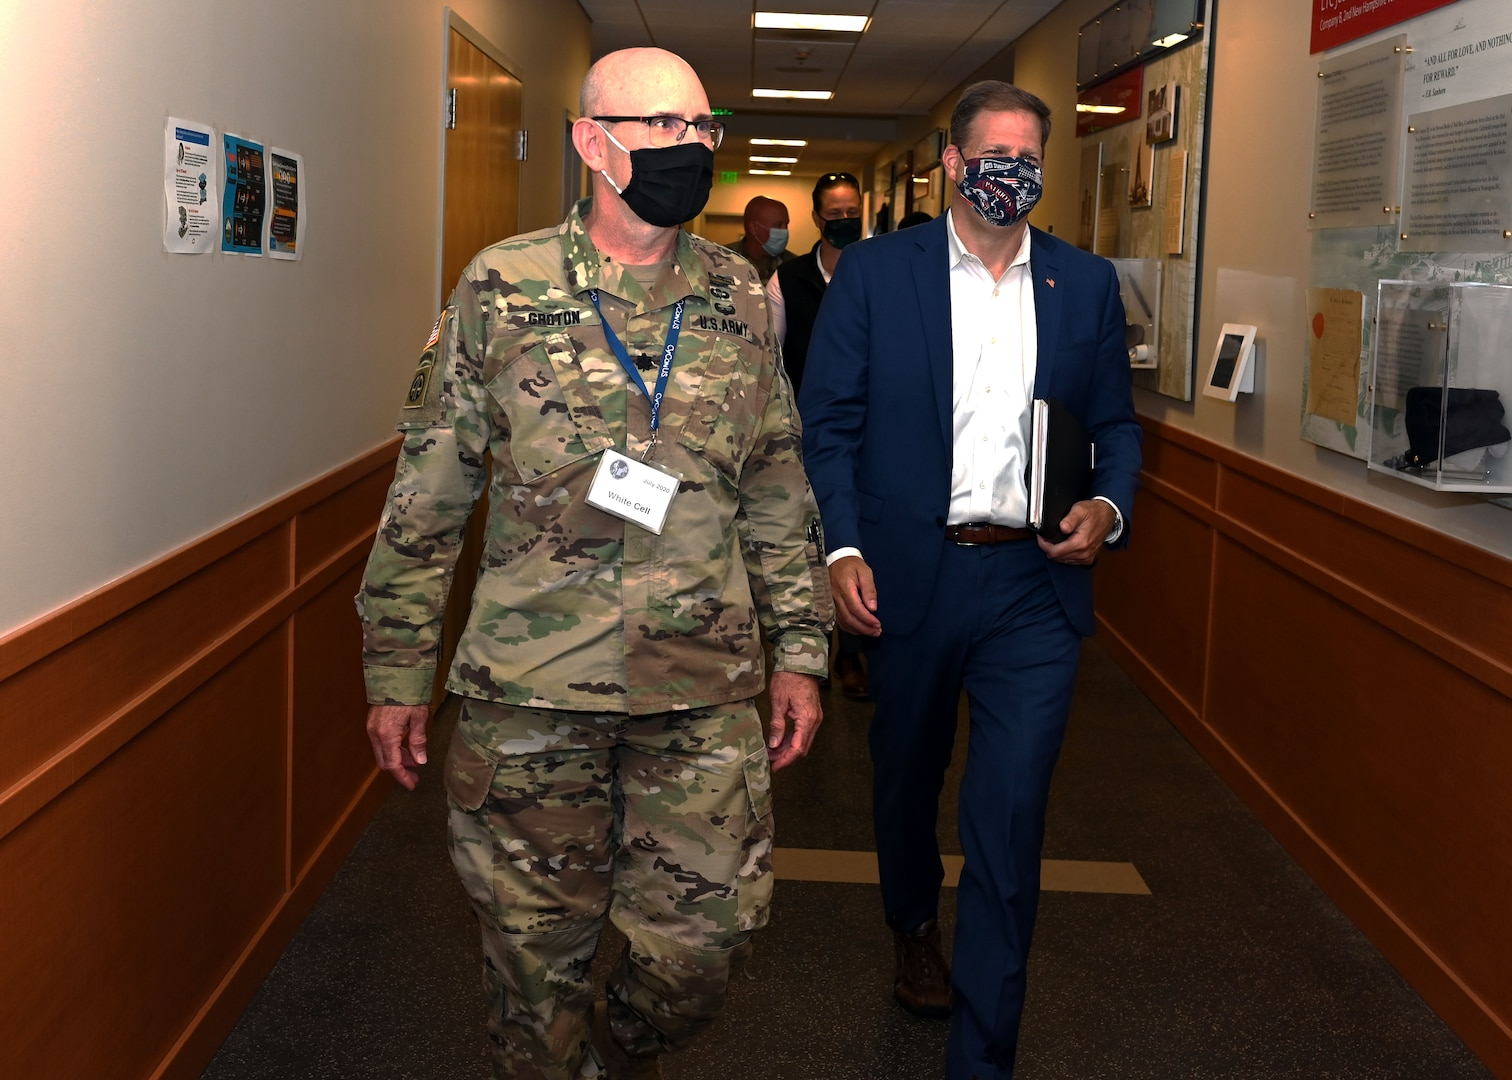 Lt. Col. Woody Groton, exercise director of Cyber Yankee 2020, leads N.H. Gov. Chris Sununu on a tour of the event on July 31, 2020, at the Edward Cross Training Center in Pembroke, N.H.